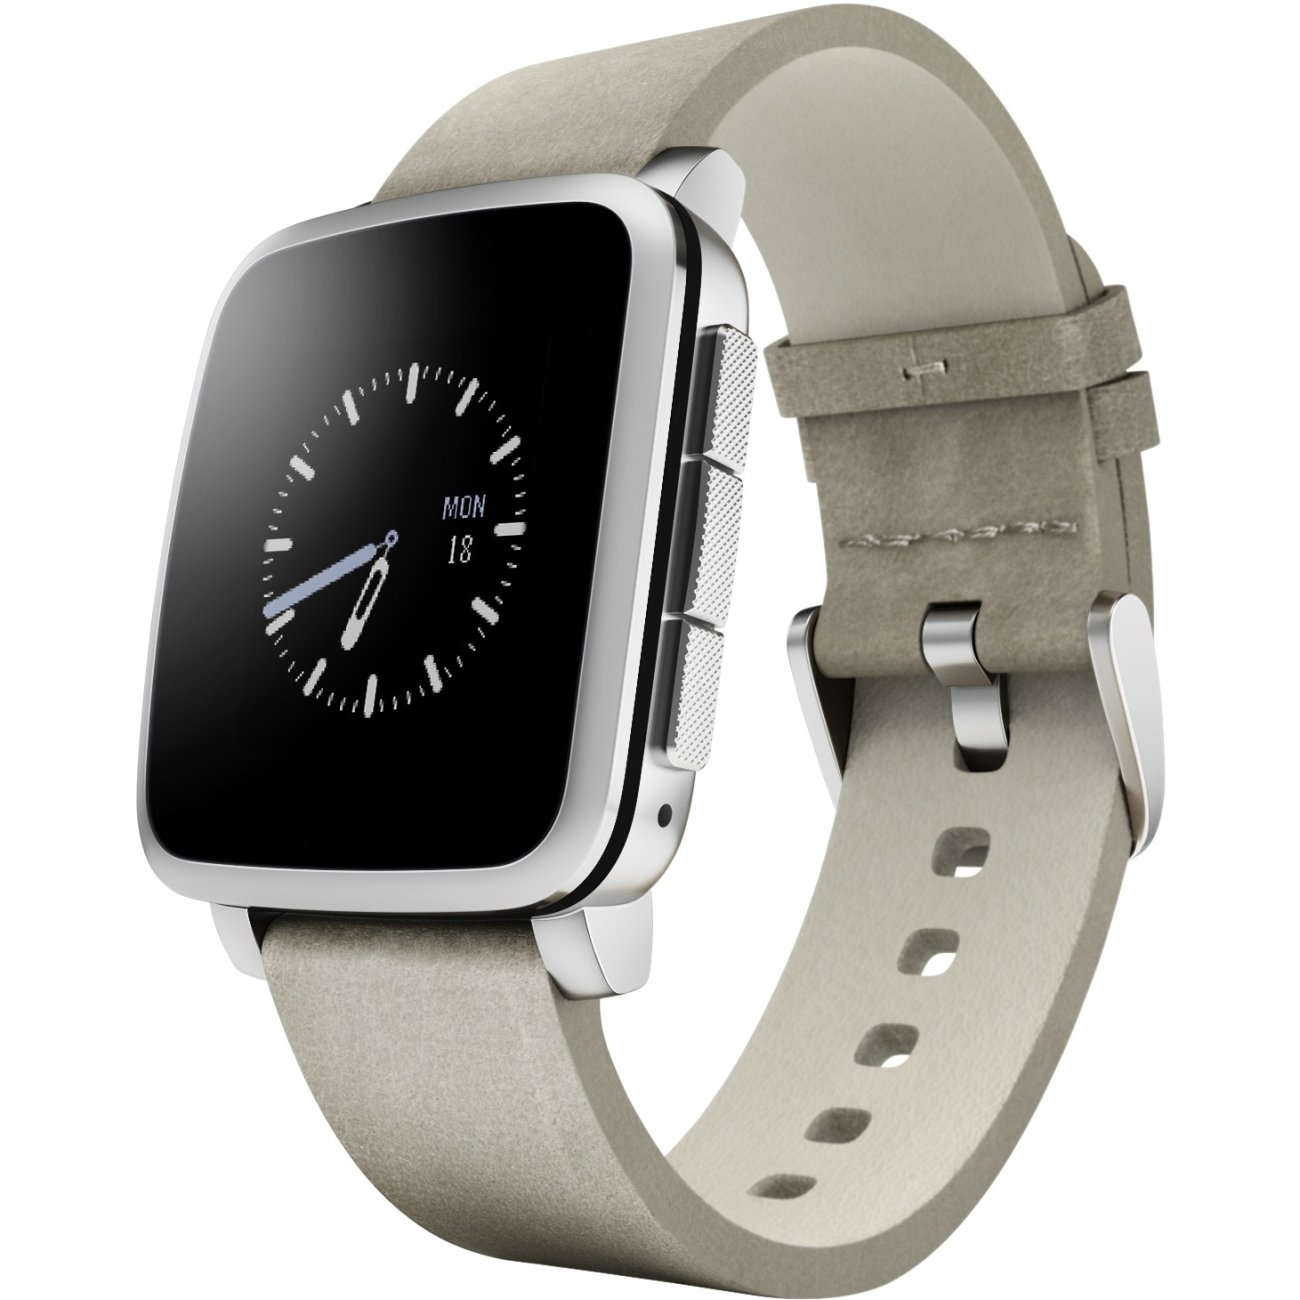 Pebble Time Steel Smartwatch For Apple/Android Devices - Silver 2